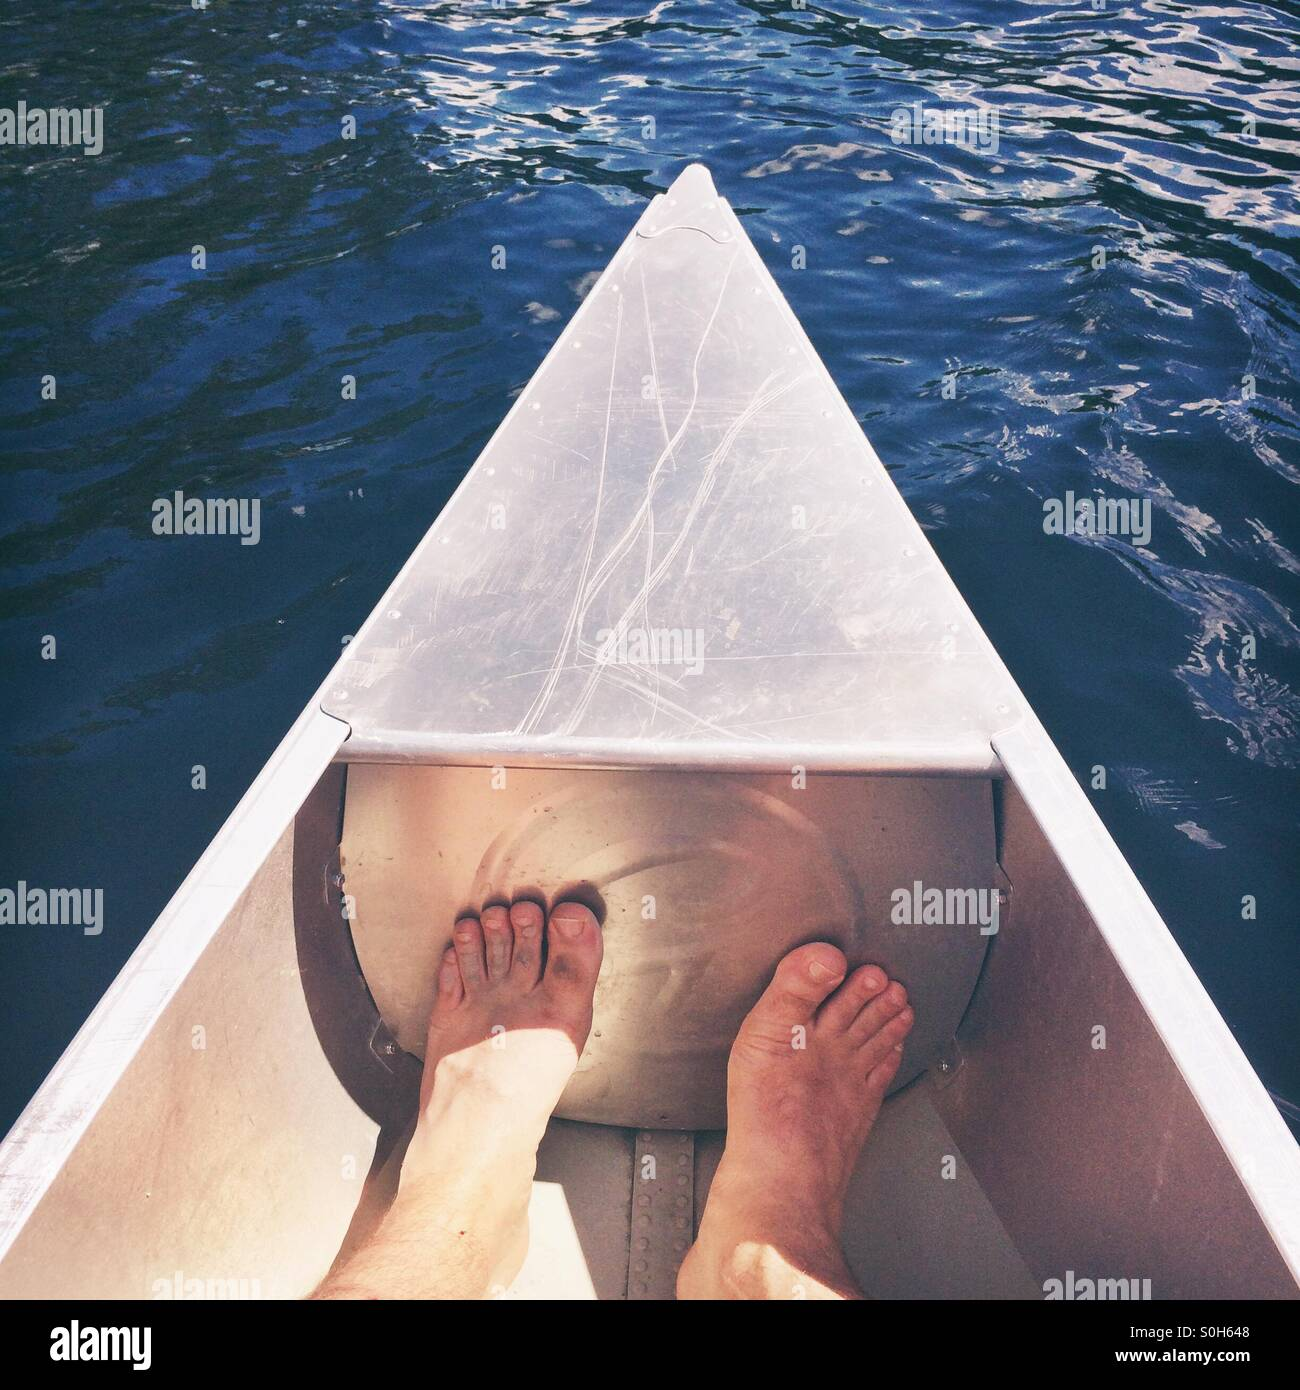 Two feet in a canoe - Stock Image